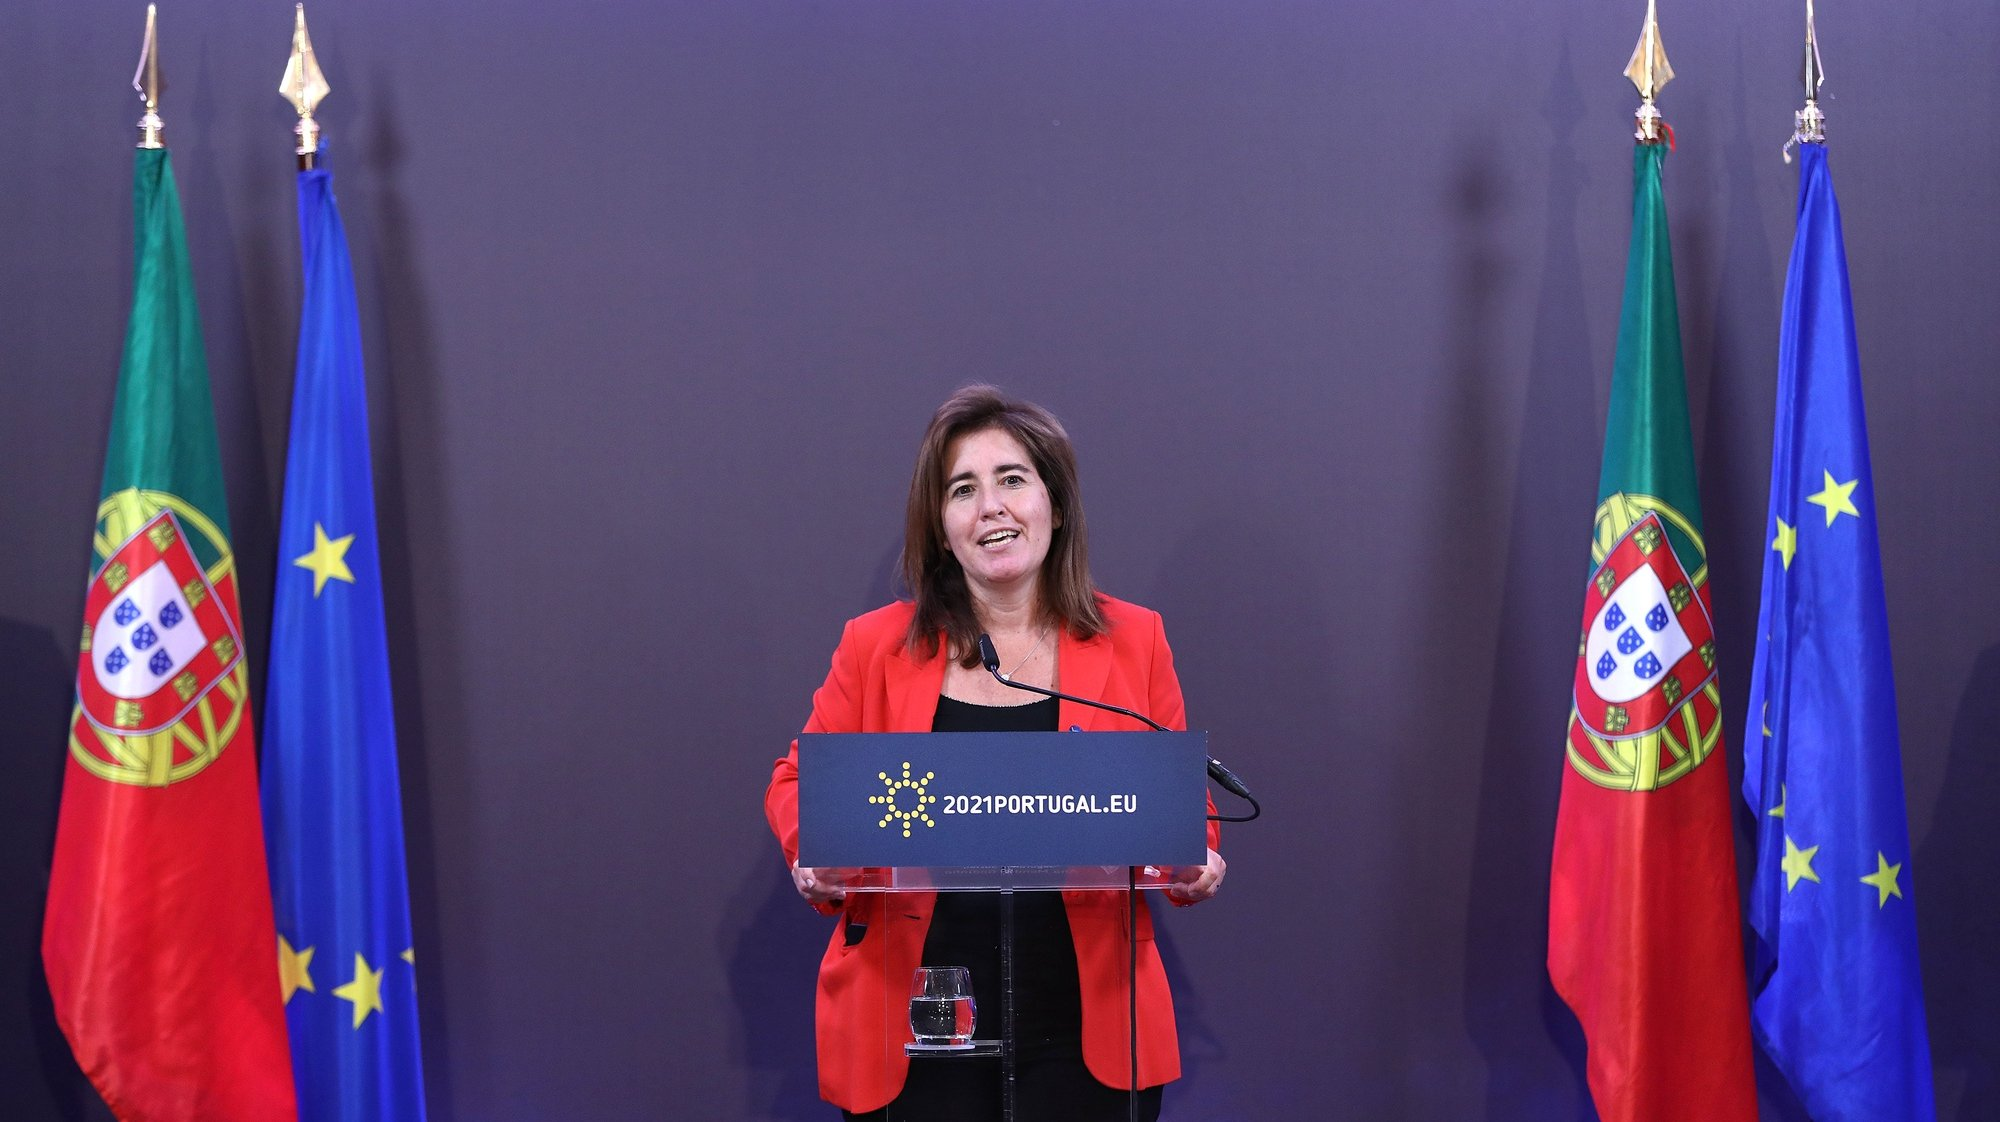 Portuguese Minister of Labour, Solidarity and Social Security Ana Mendes Godinho  attends a press conference after a High-Level Conference on the European Platform on Combating Homelessness under the Portuguese Presidency of the Council of the European Union in Lisbon, Portugal, 21 June 2021. Based on the launching of the European Platform on Combatting Homelessness, the debate will pay special attention to key areas that affect the daily lives of homelessness people and to the solutions that can help combating this situation in Europe. ANTONIO PEDRO SANTOS/LUSA